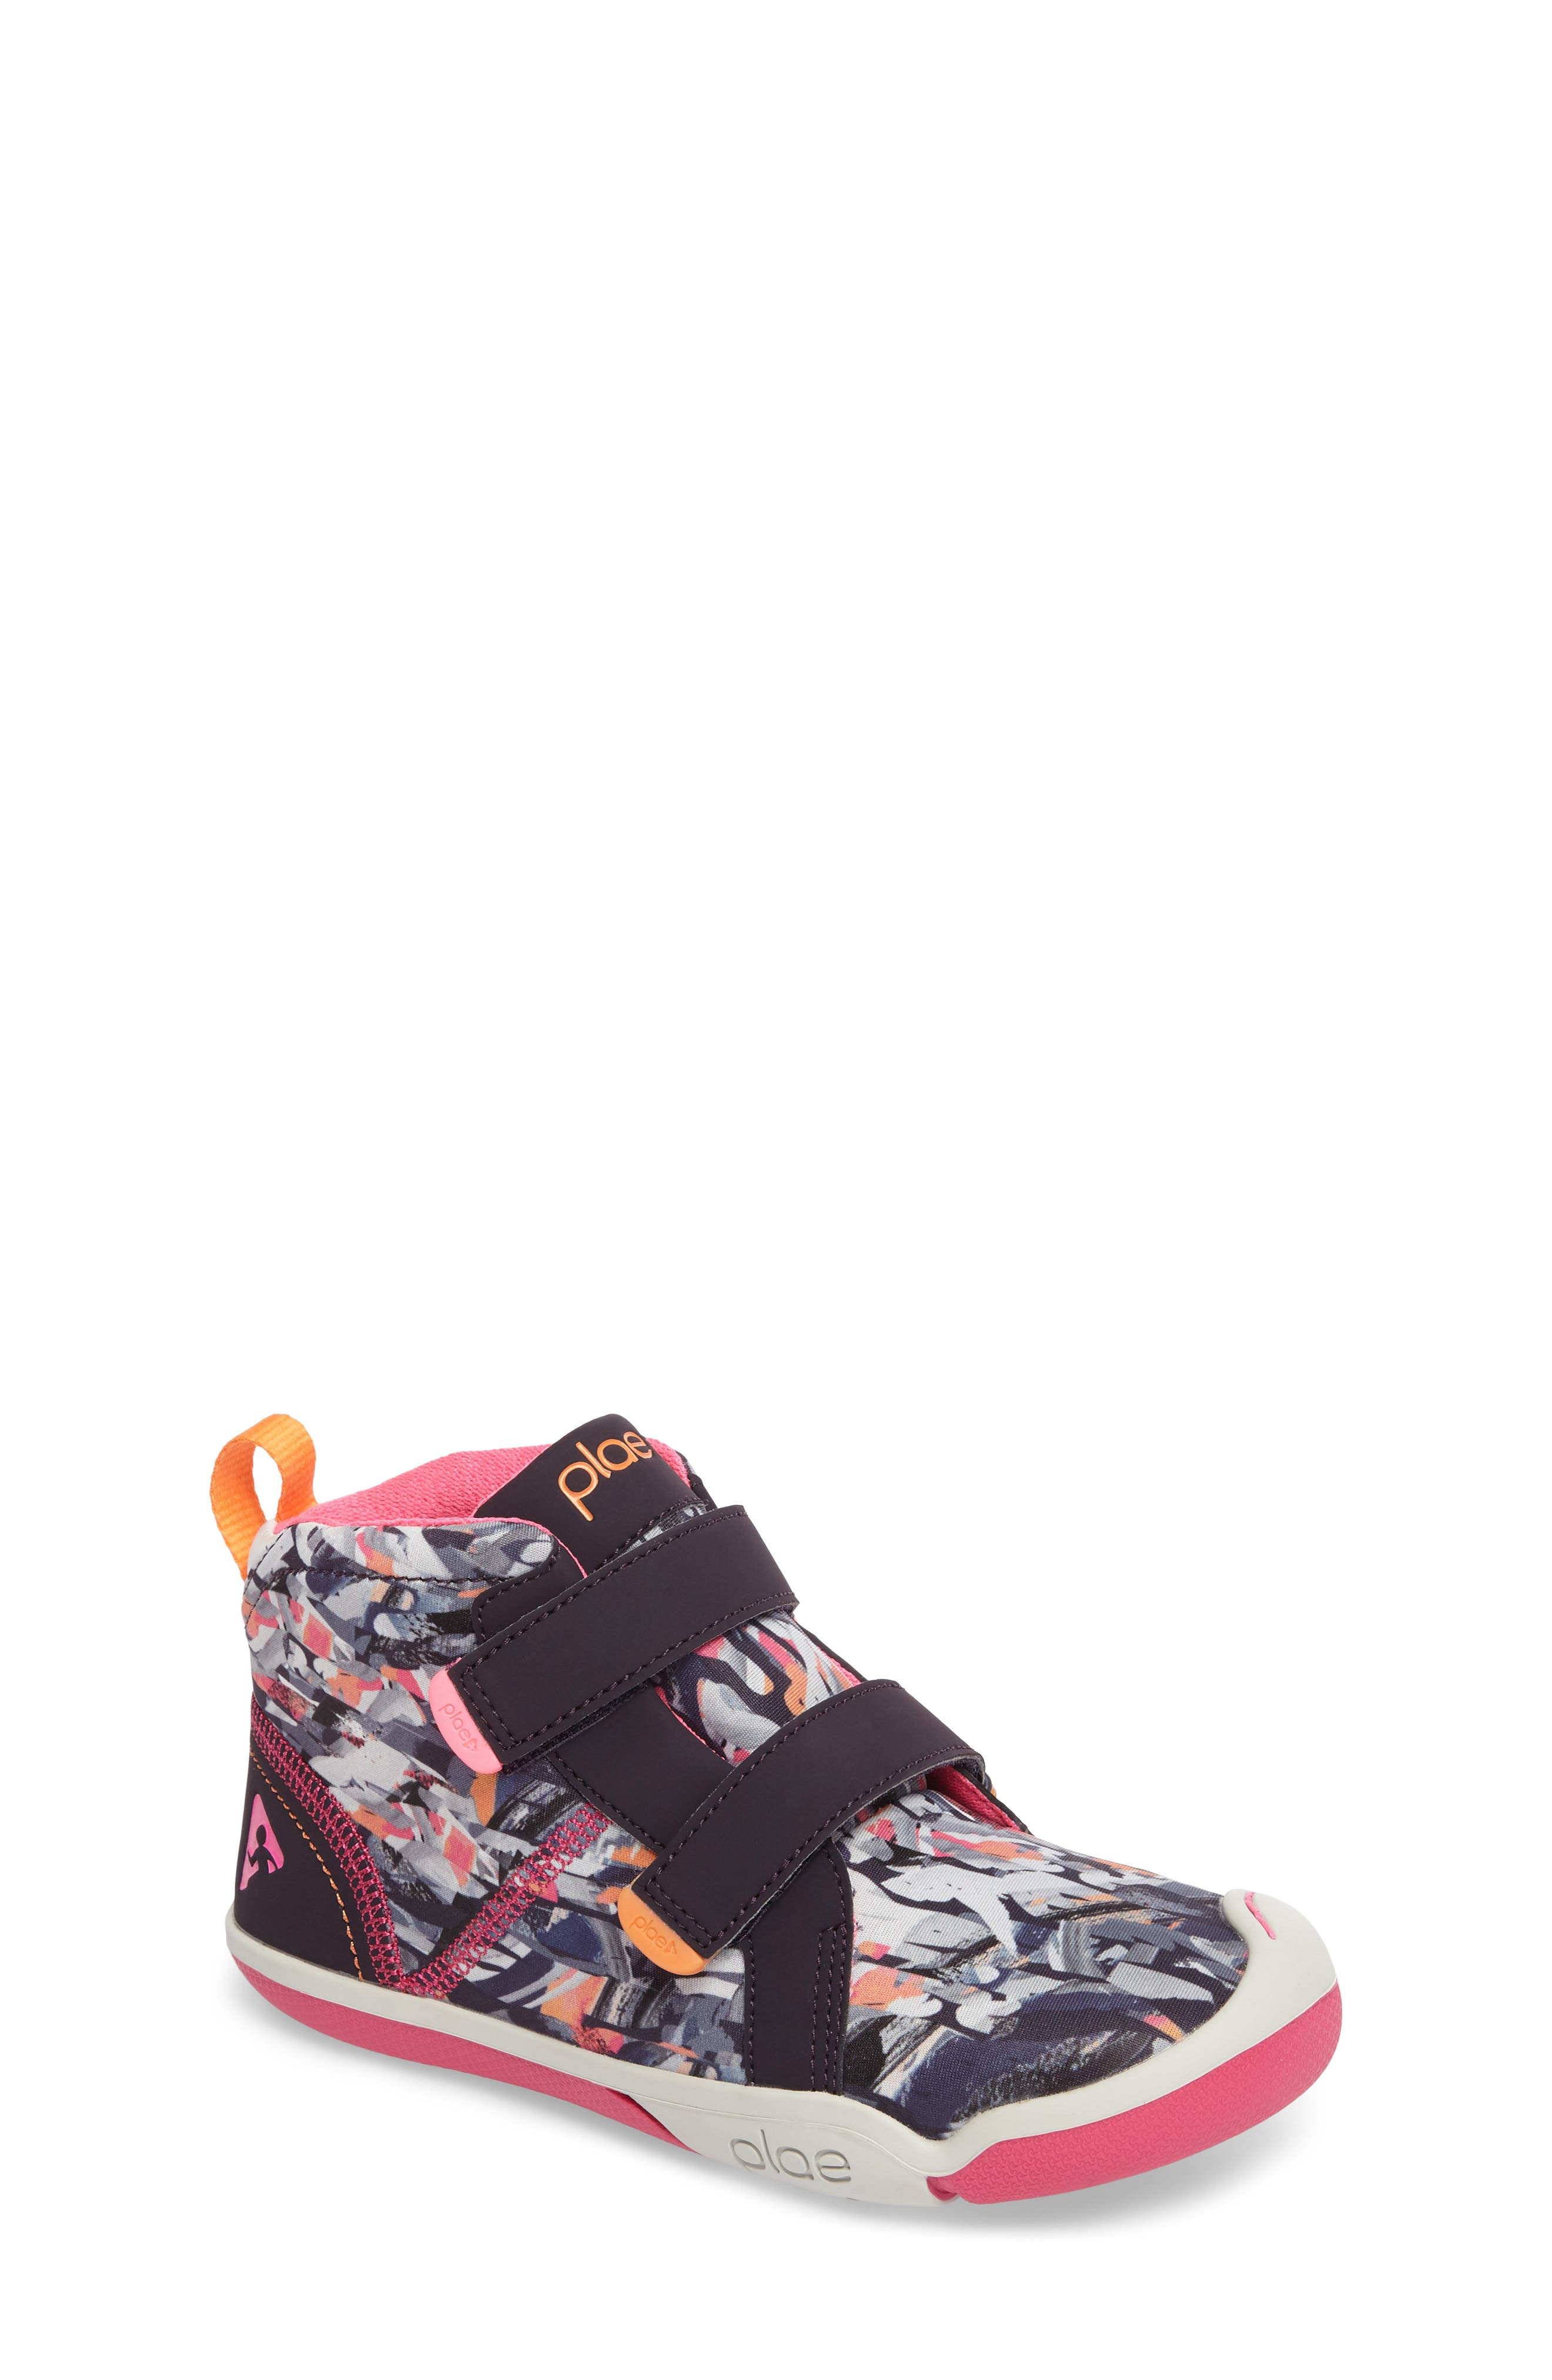 Max Customizable Mid Top Sneaker,                         Main,                         color, 503